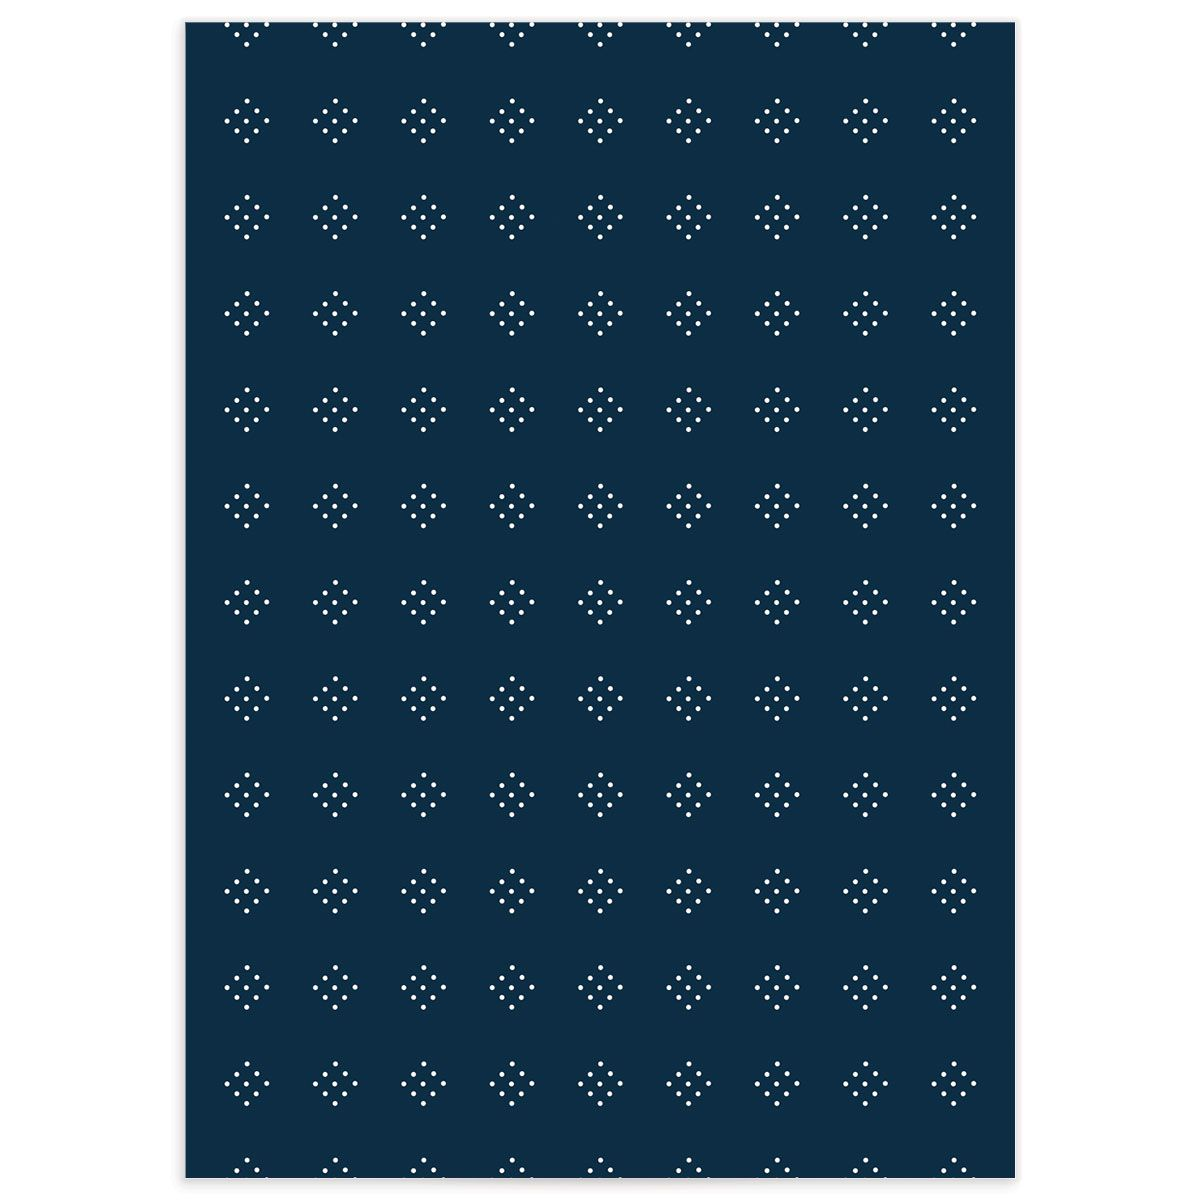 Formal Ampersand Enclosure Card back navy